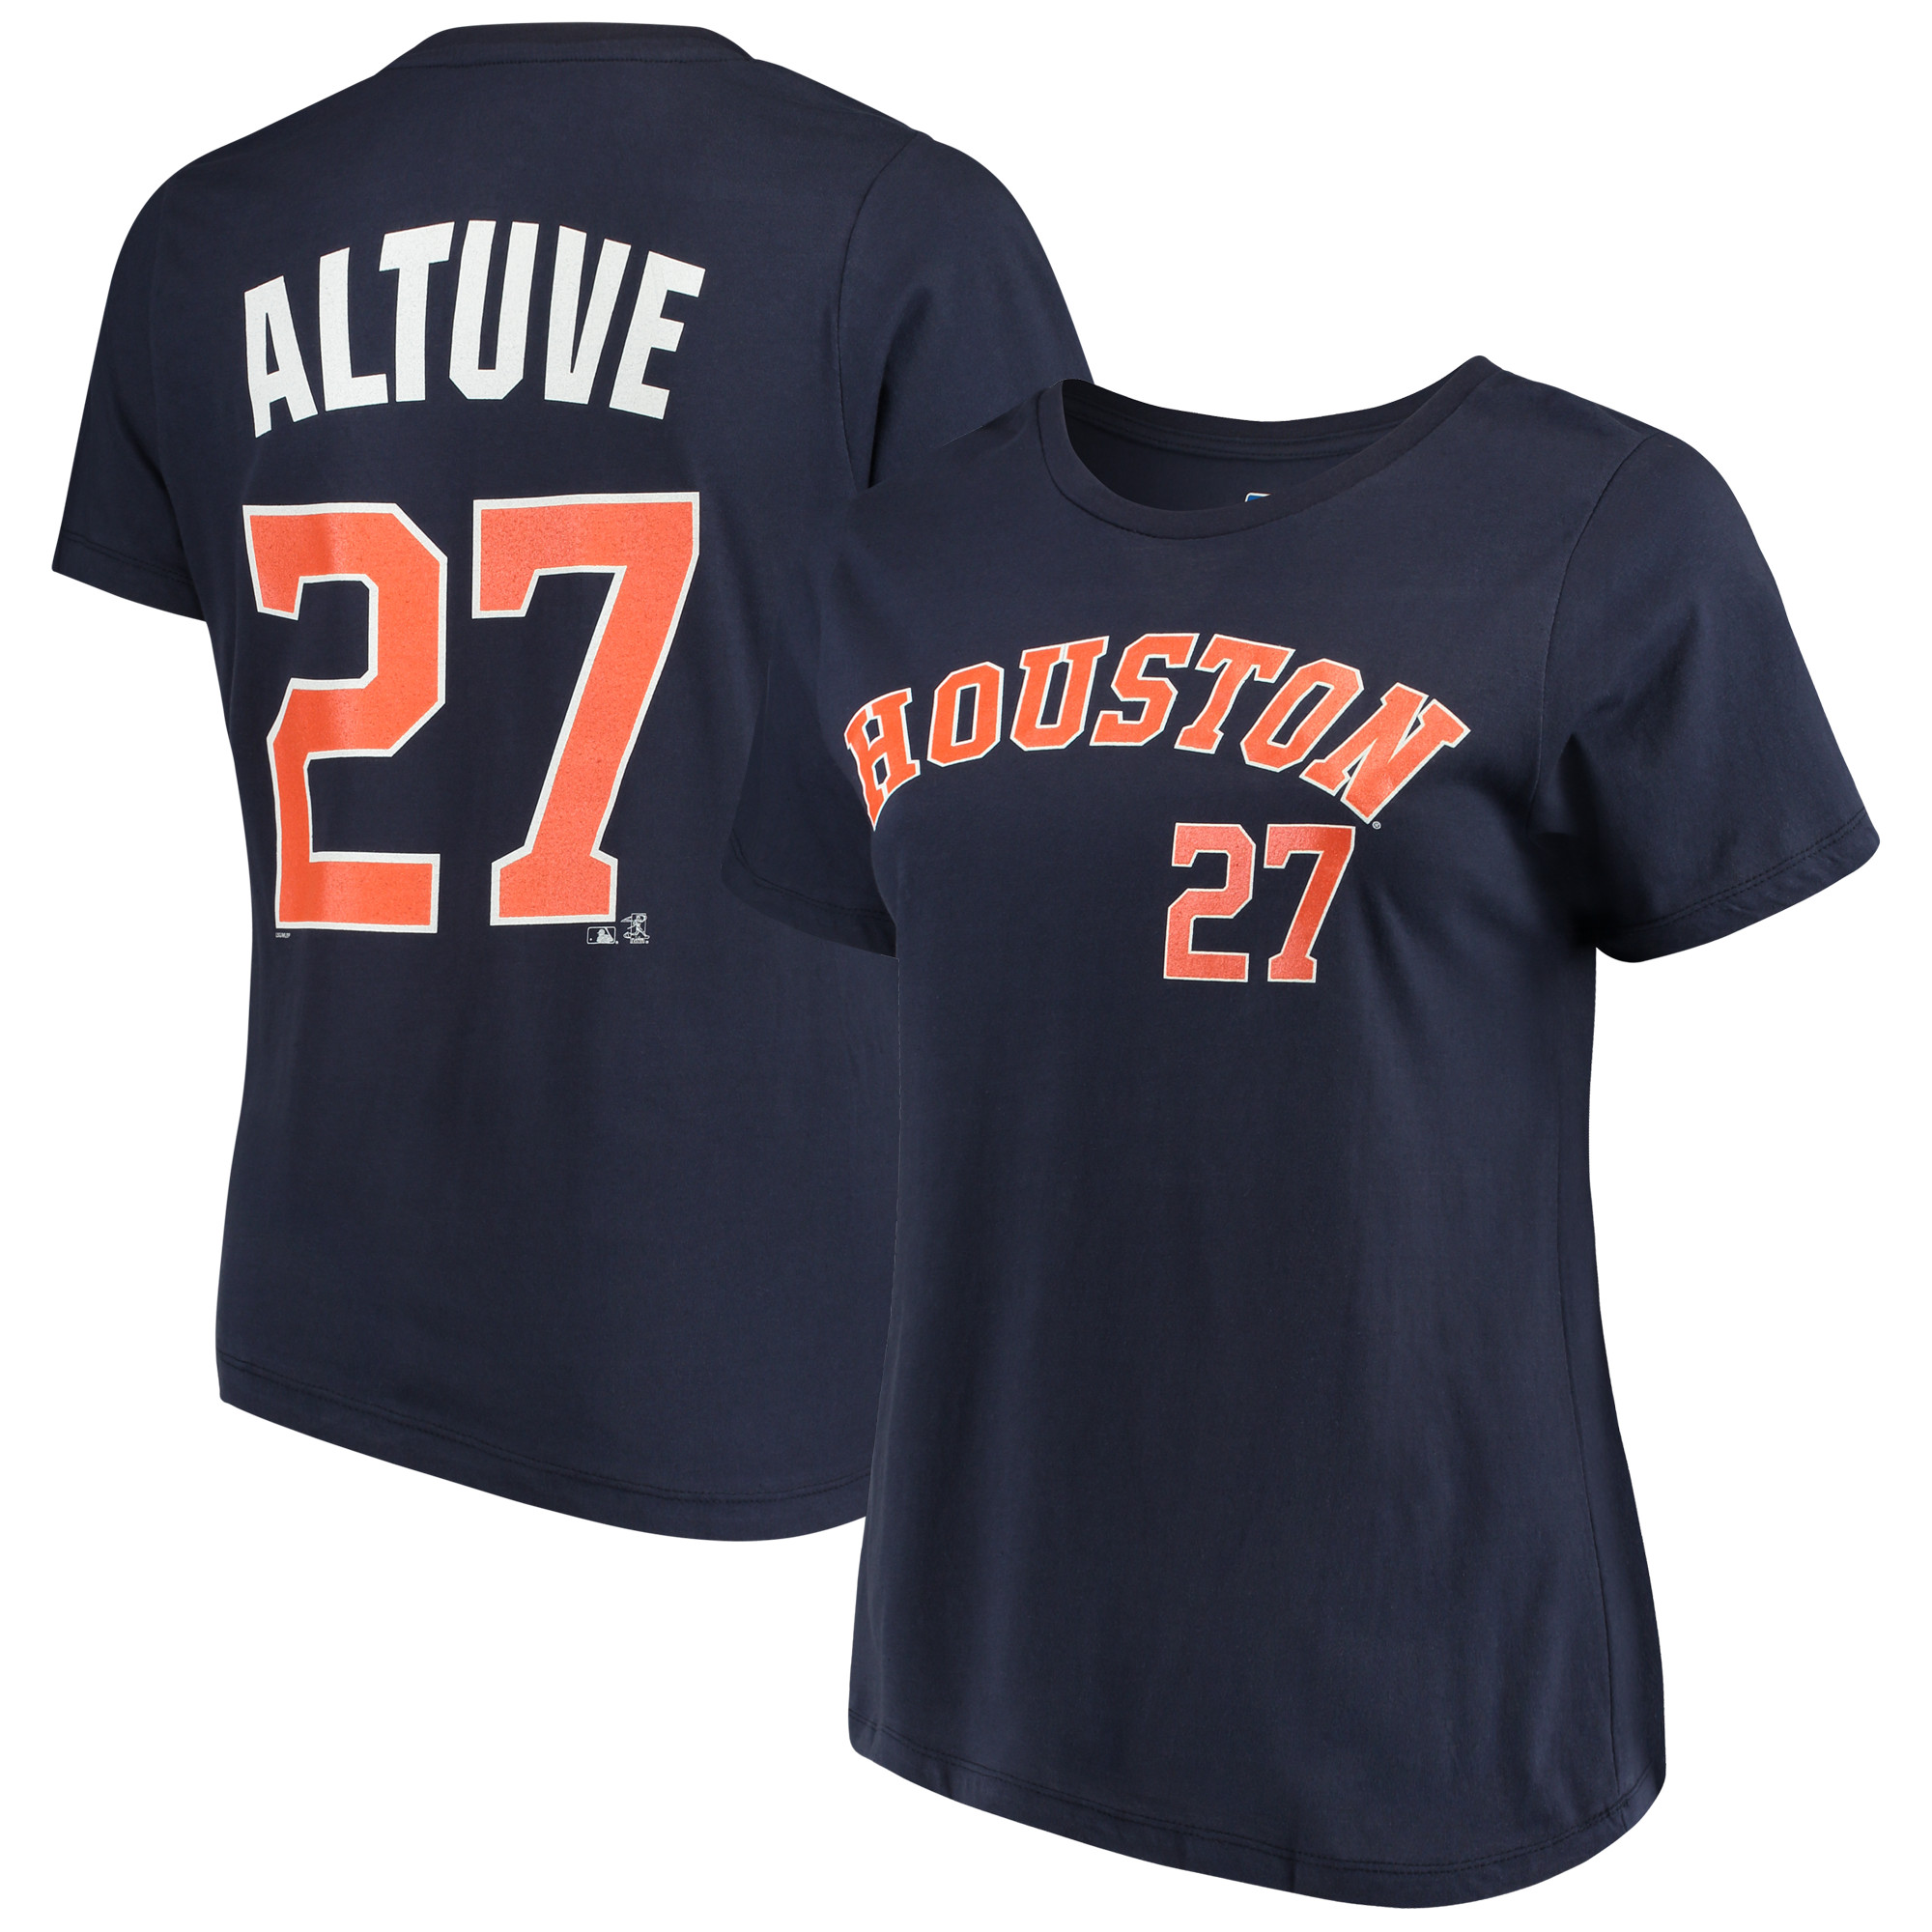 huge selection of 59f9f e59a7 Women's Majestic Jose Altuve Navy Houston Astros Name & Number T-Shirt